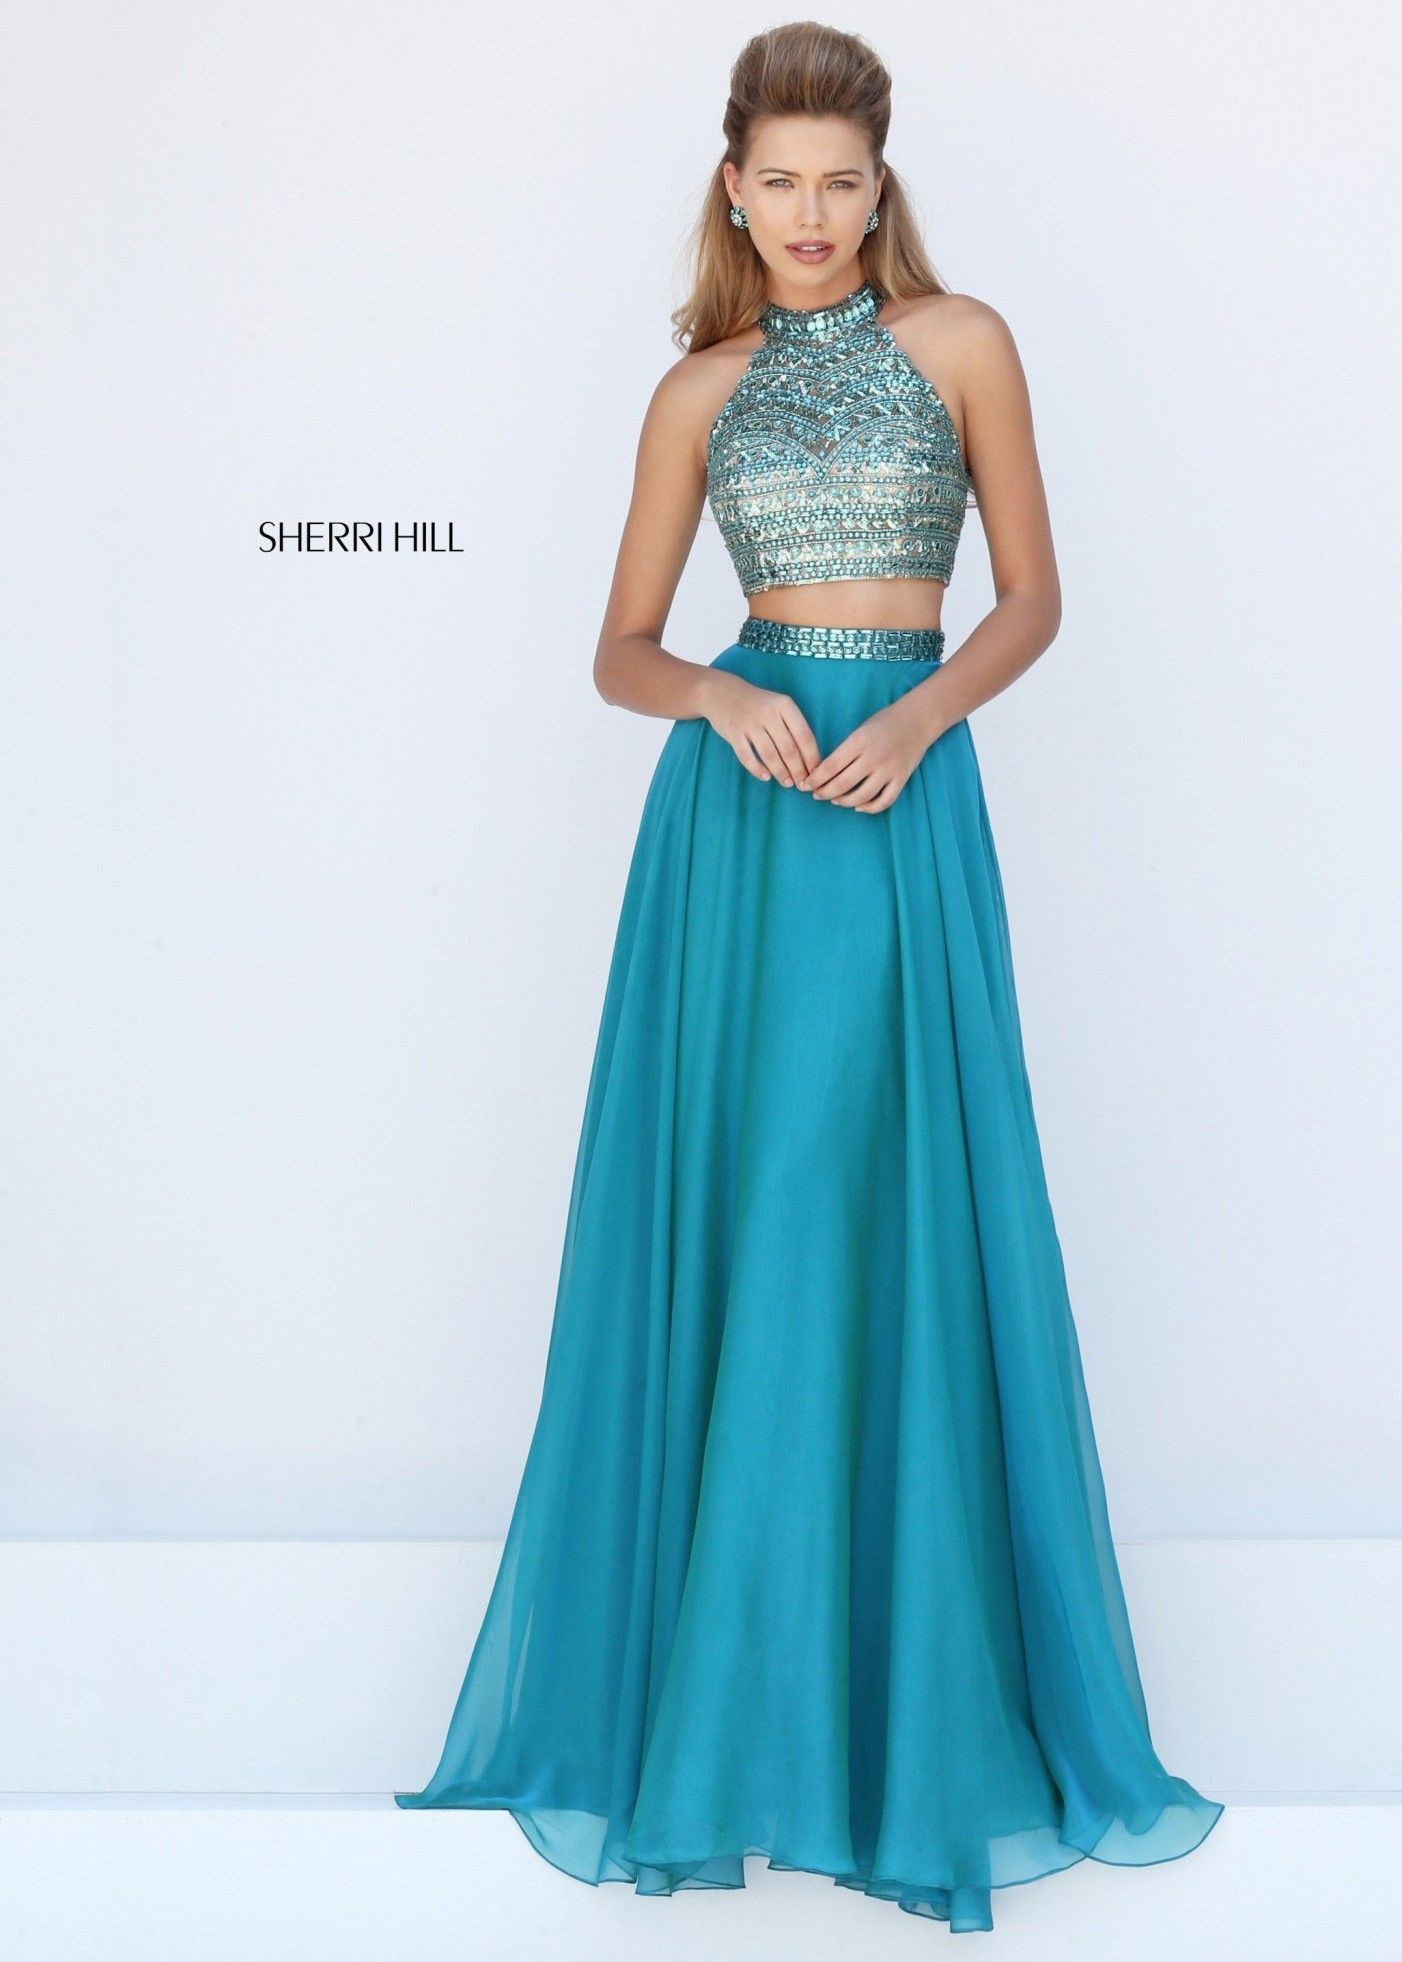 Sherri Hill 50096 Sparkly Jeweled Crop Top 2 Piece Dress | Jewel ...